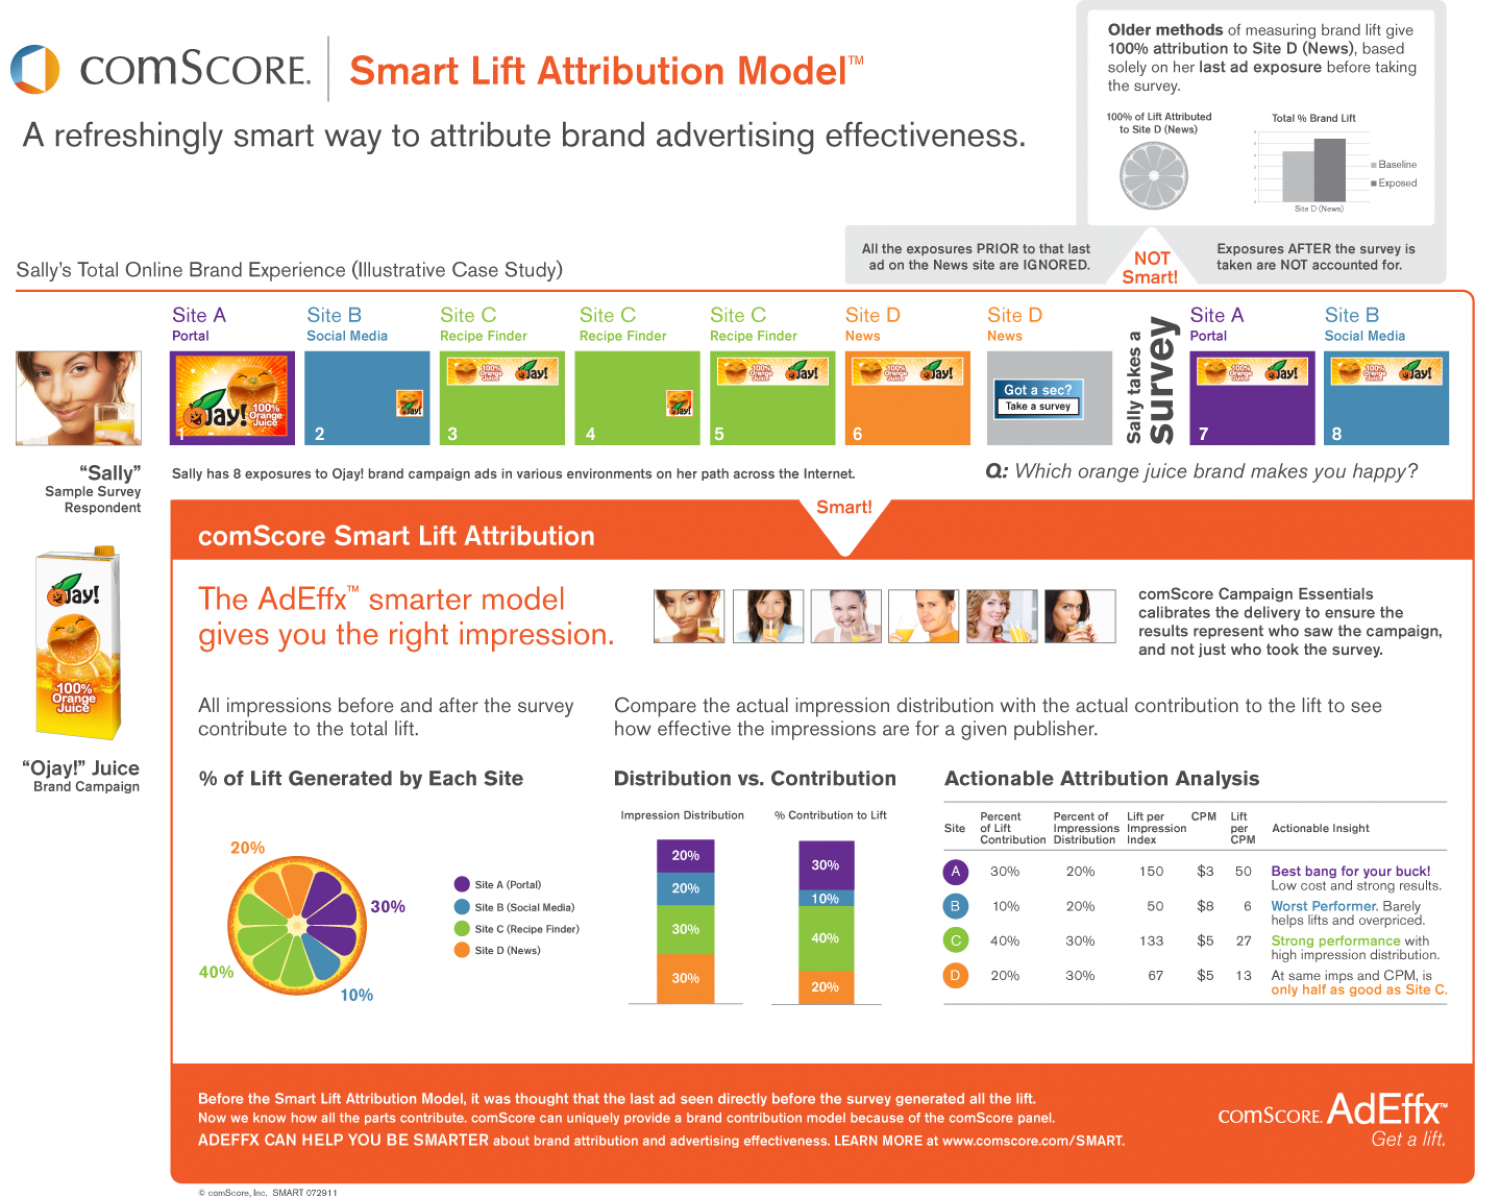 ComScore Smart Lift Attribution Model Infographic